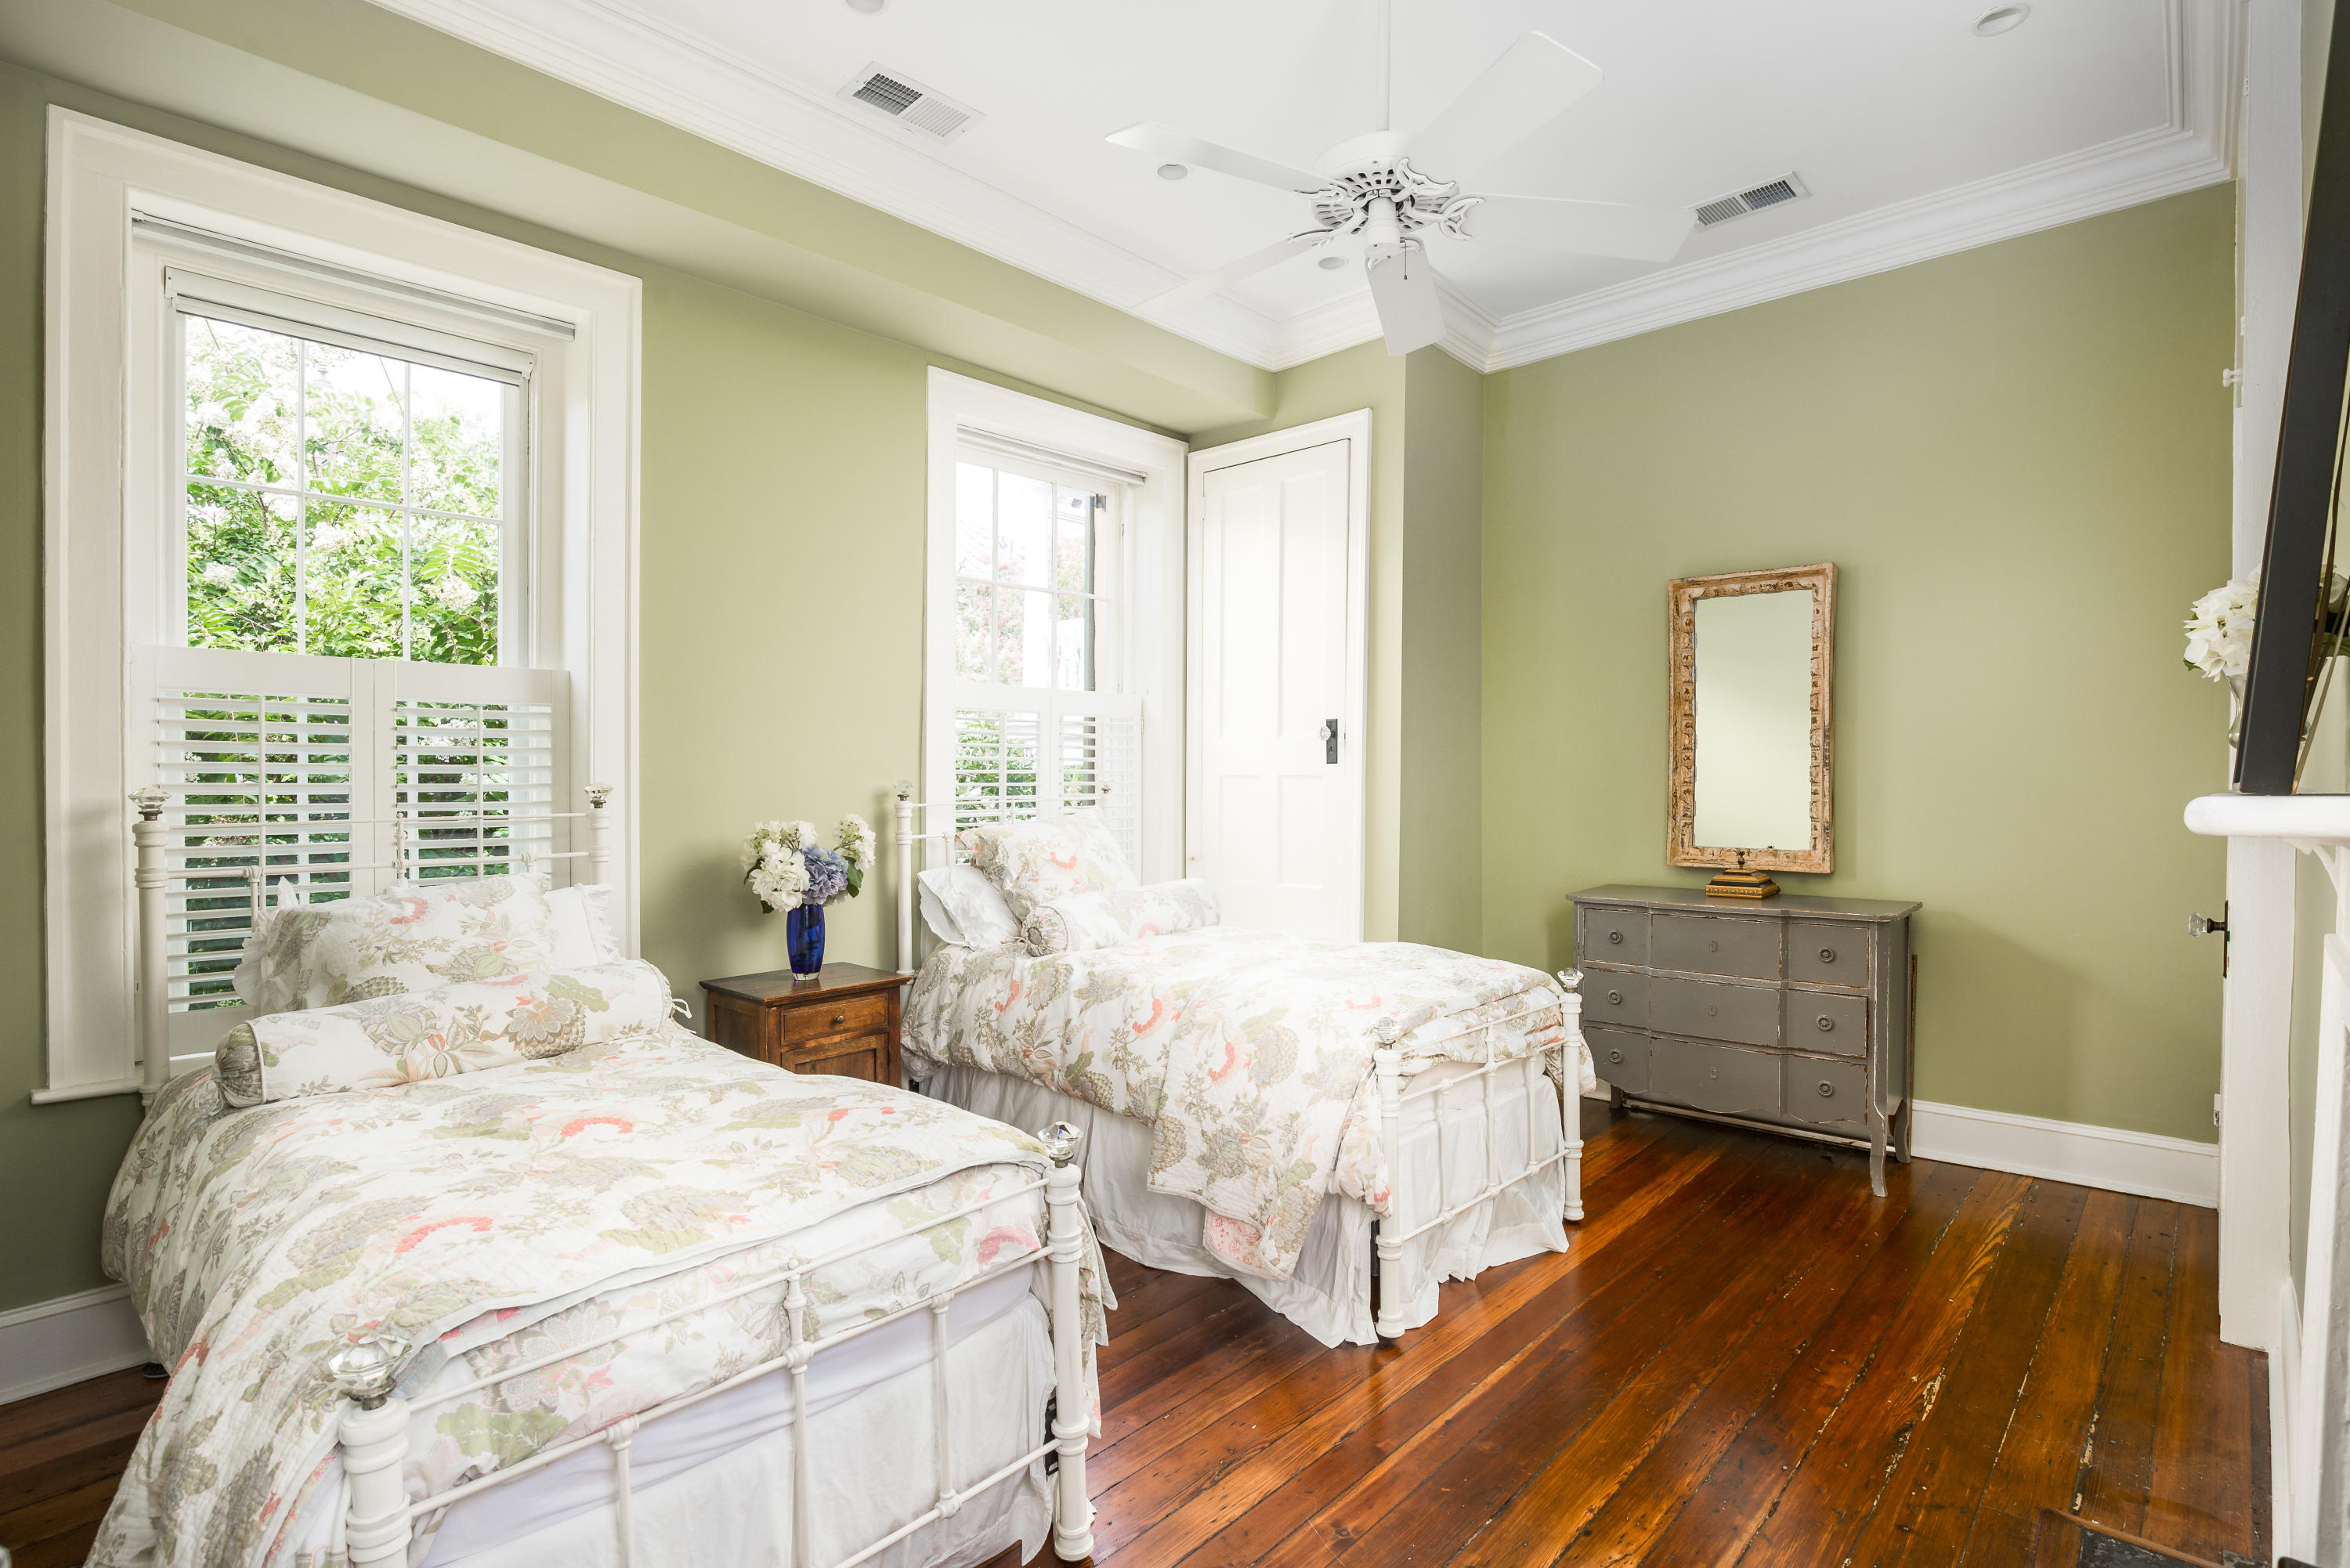 South of Broad Homes For Sale - 61 1/2 Tradd, Charleston, SC - 27